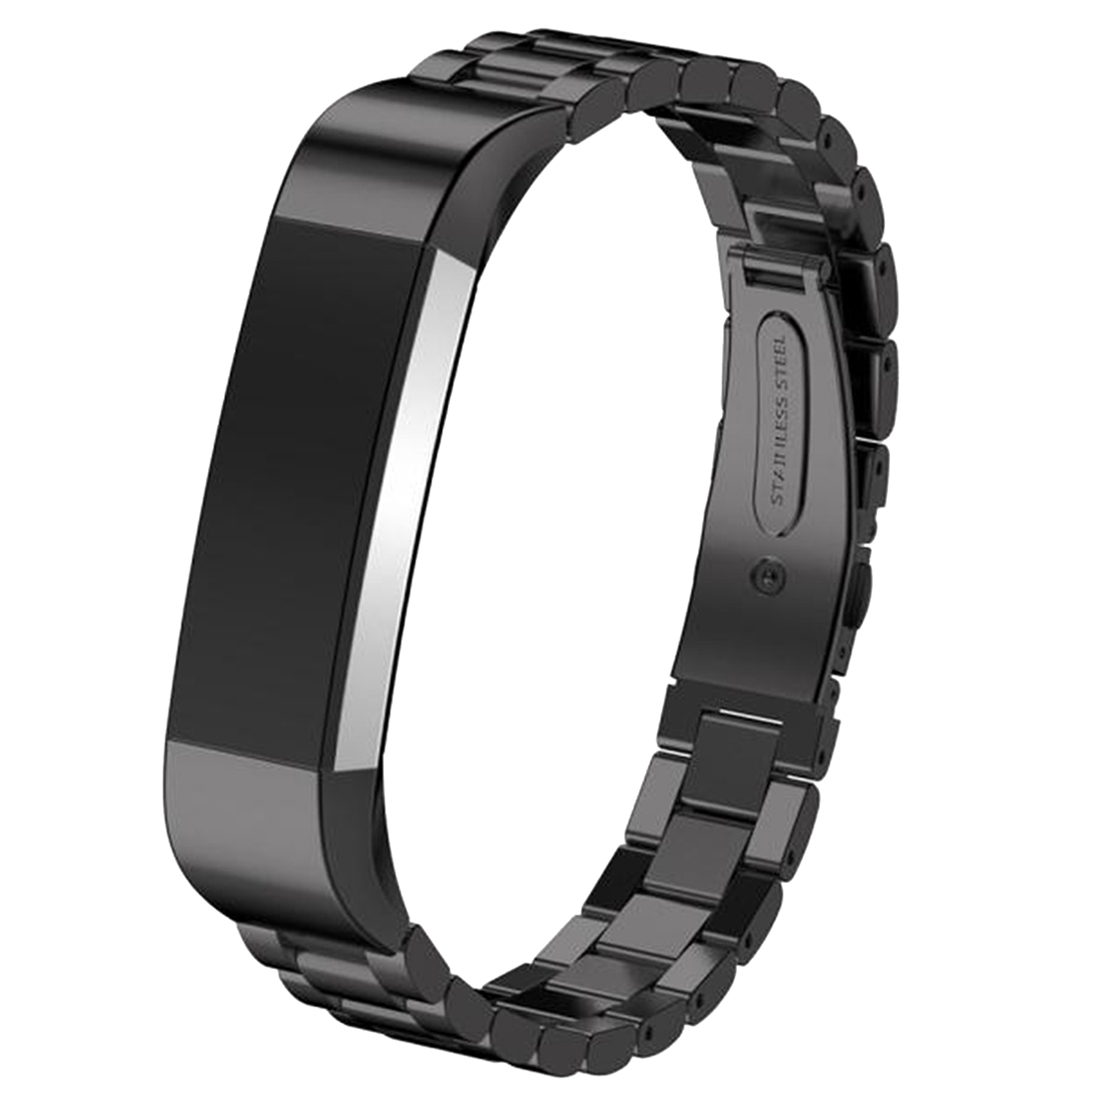 Stainless Steel Watch Band Fitness Tracker Wrist Strap For Fitbit Alta Bracelet